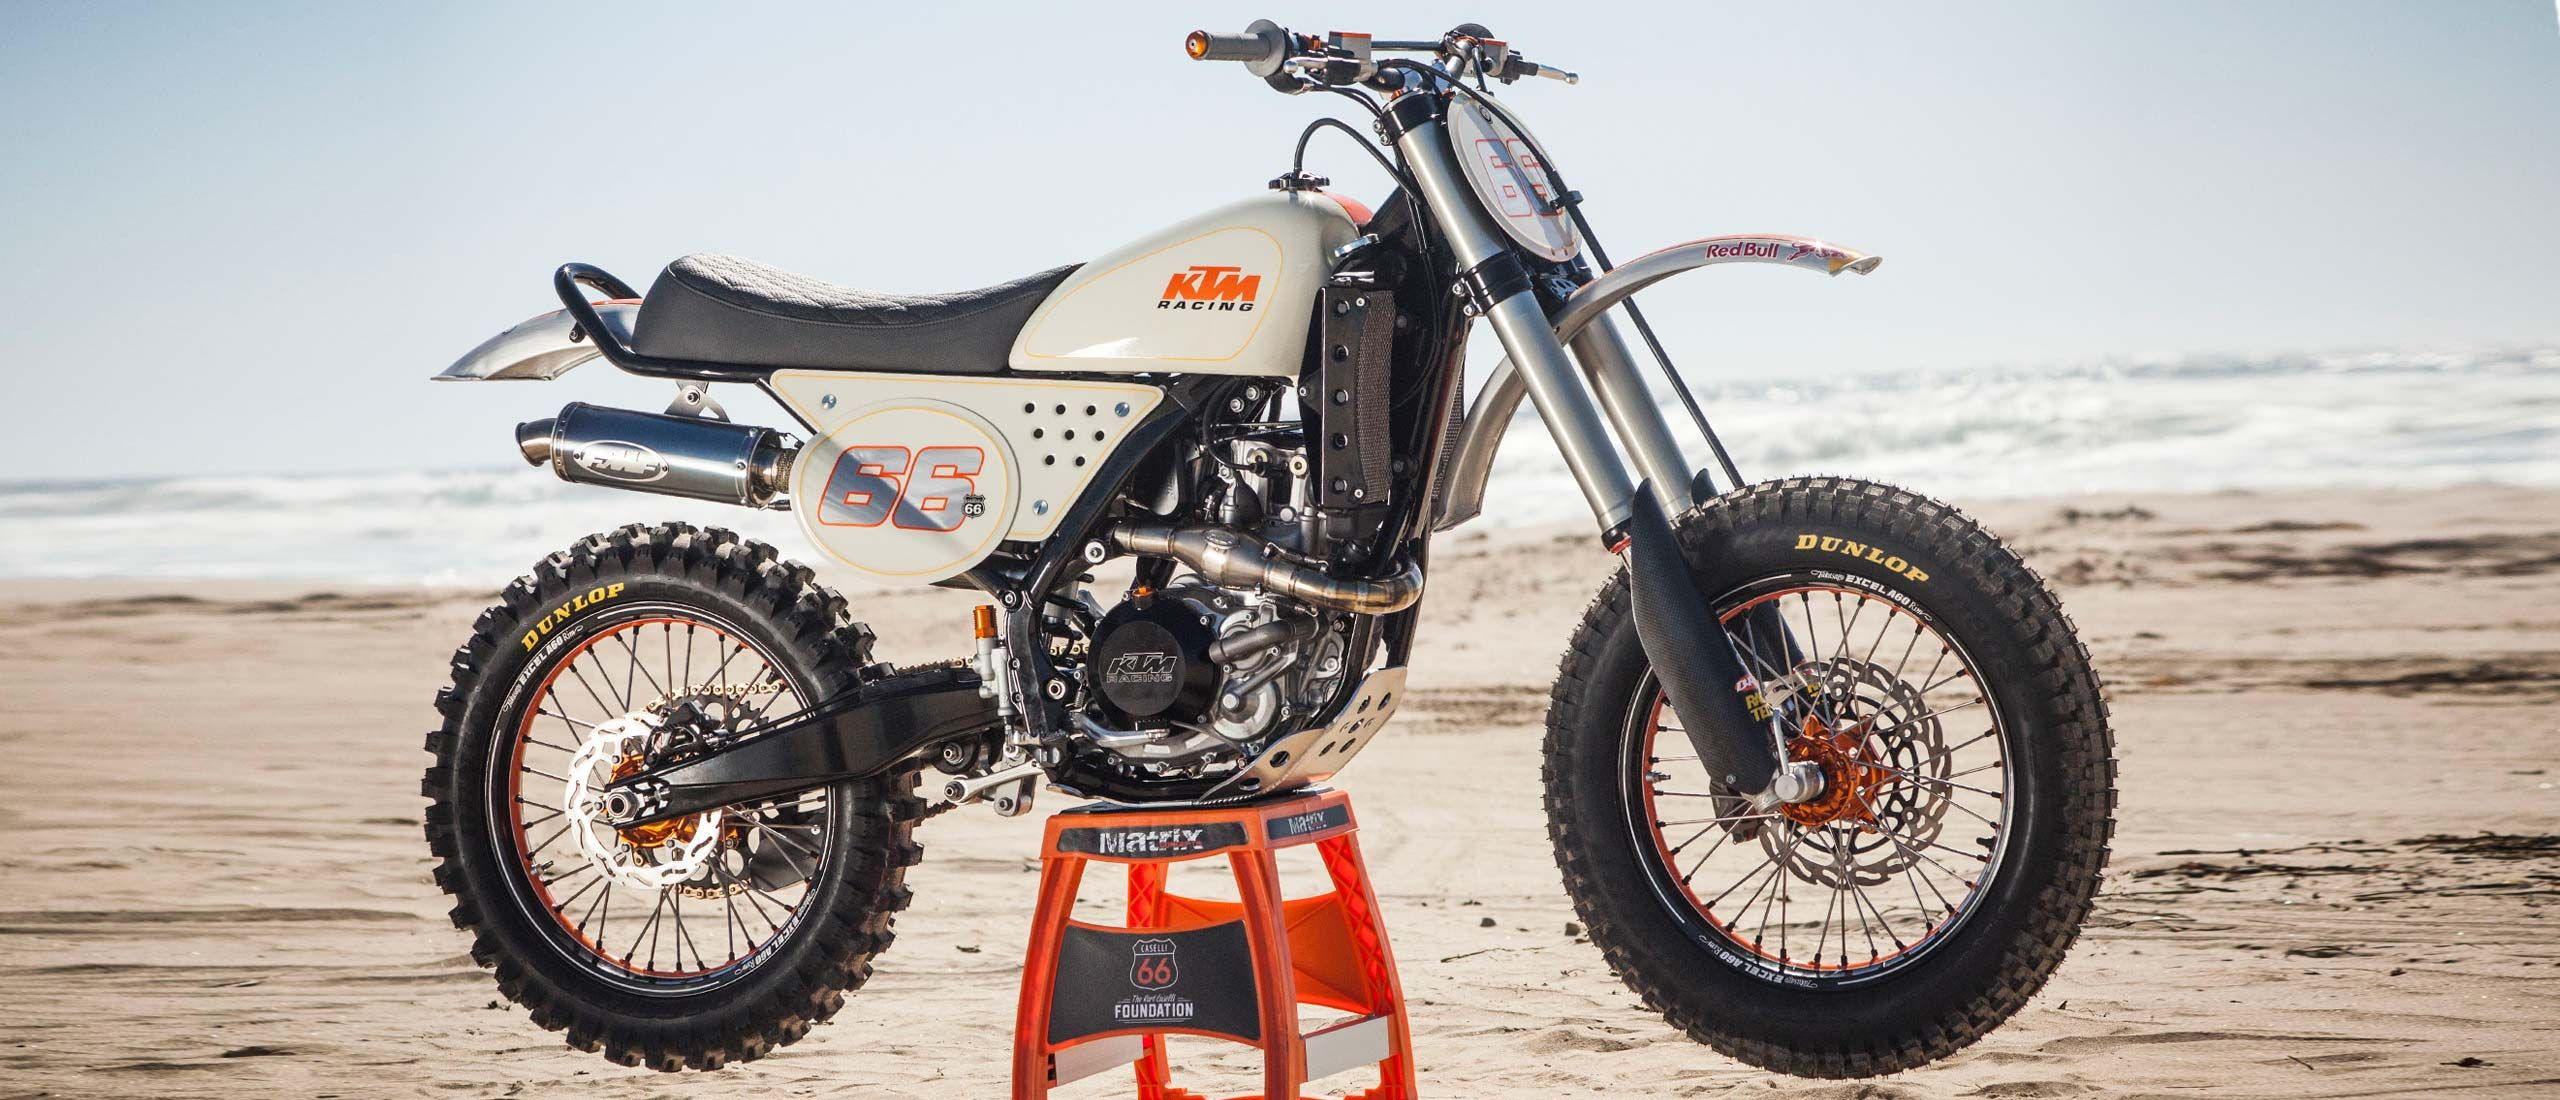 RSD Caselli - Blog - Motorcycle Parts and Riding Gear - Roland Sands Design